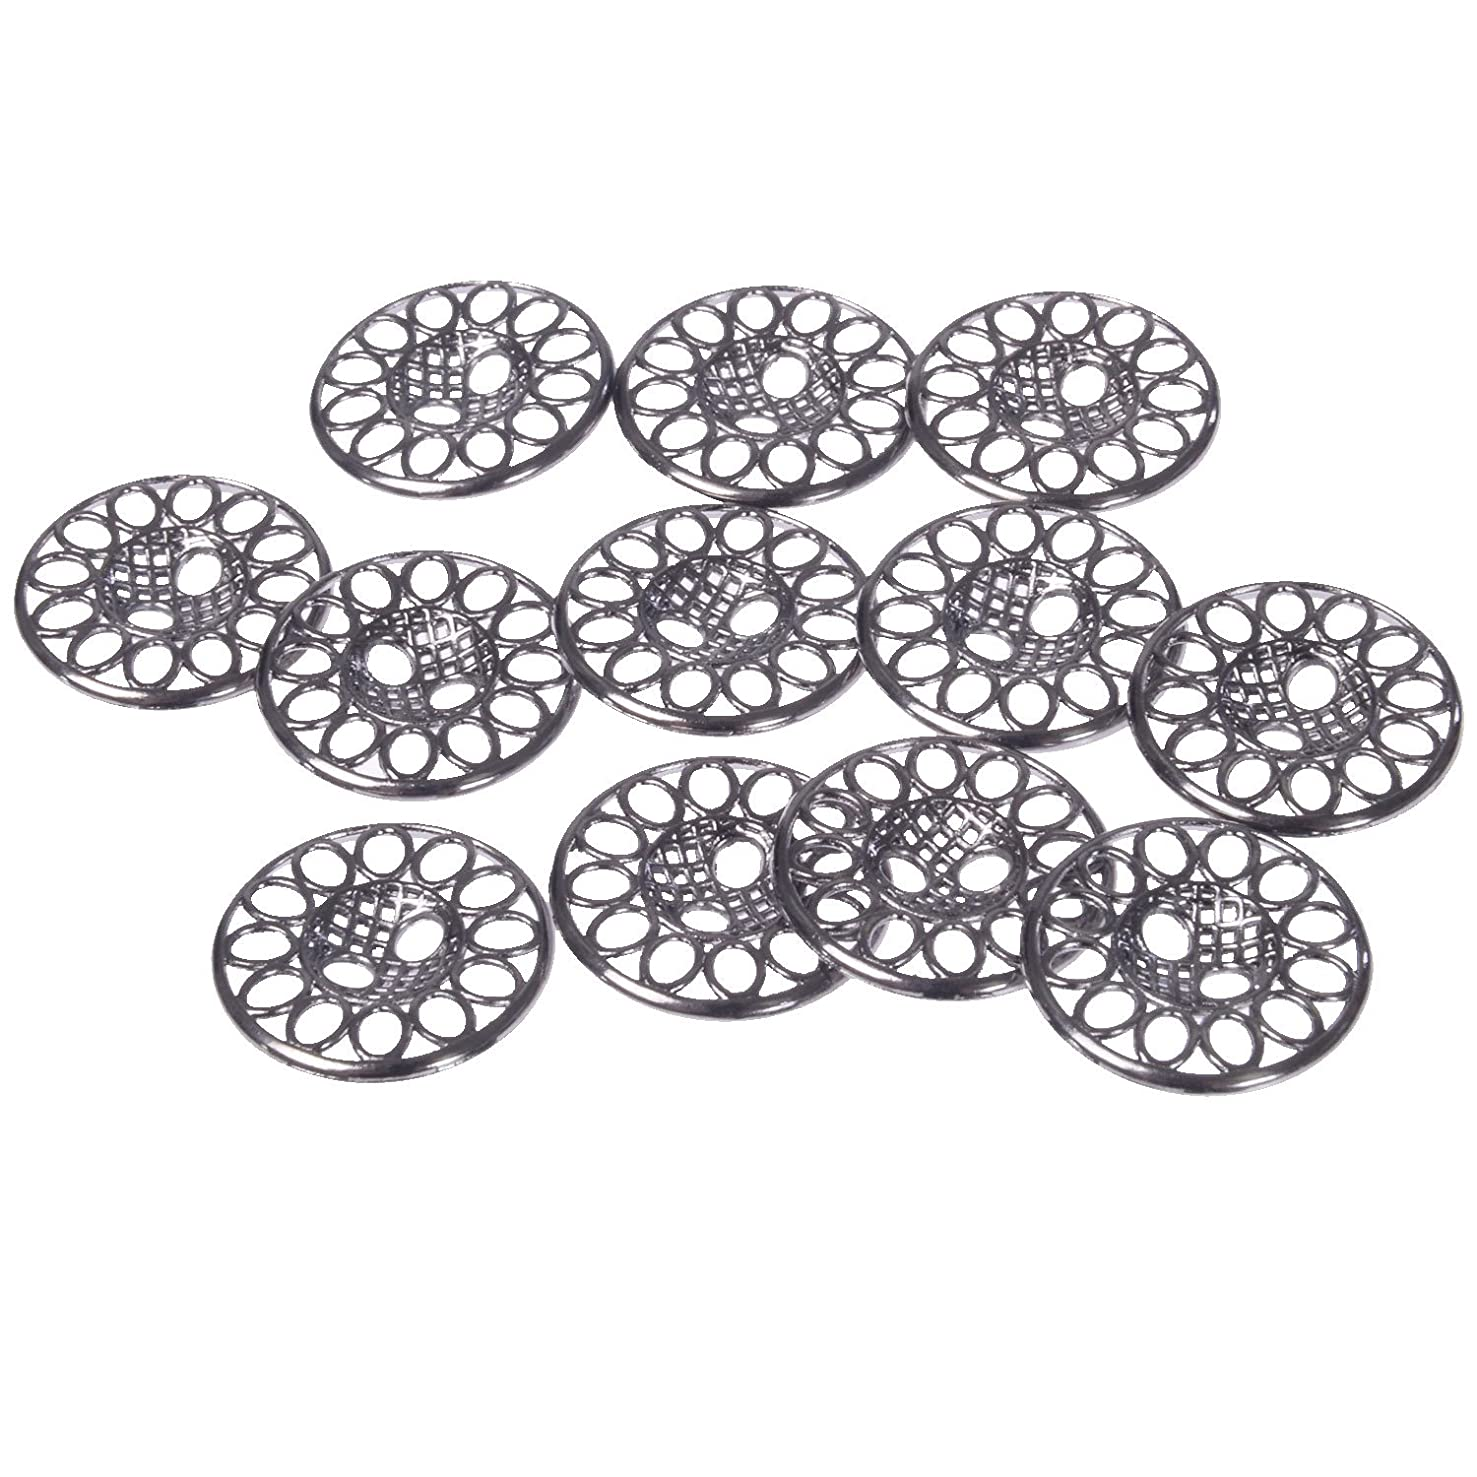 Mibo Zinc Die Casting Metal Button Perforated Filigree Design 2 Hole 28 Line Gunmetal (12pc)